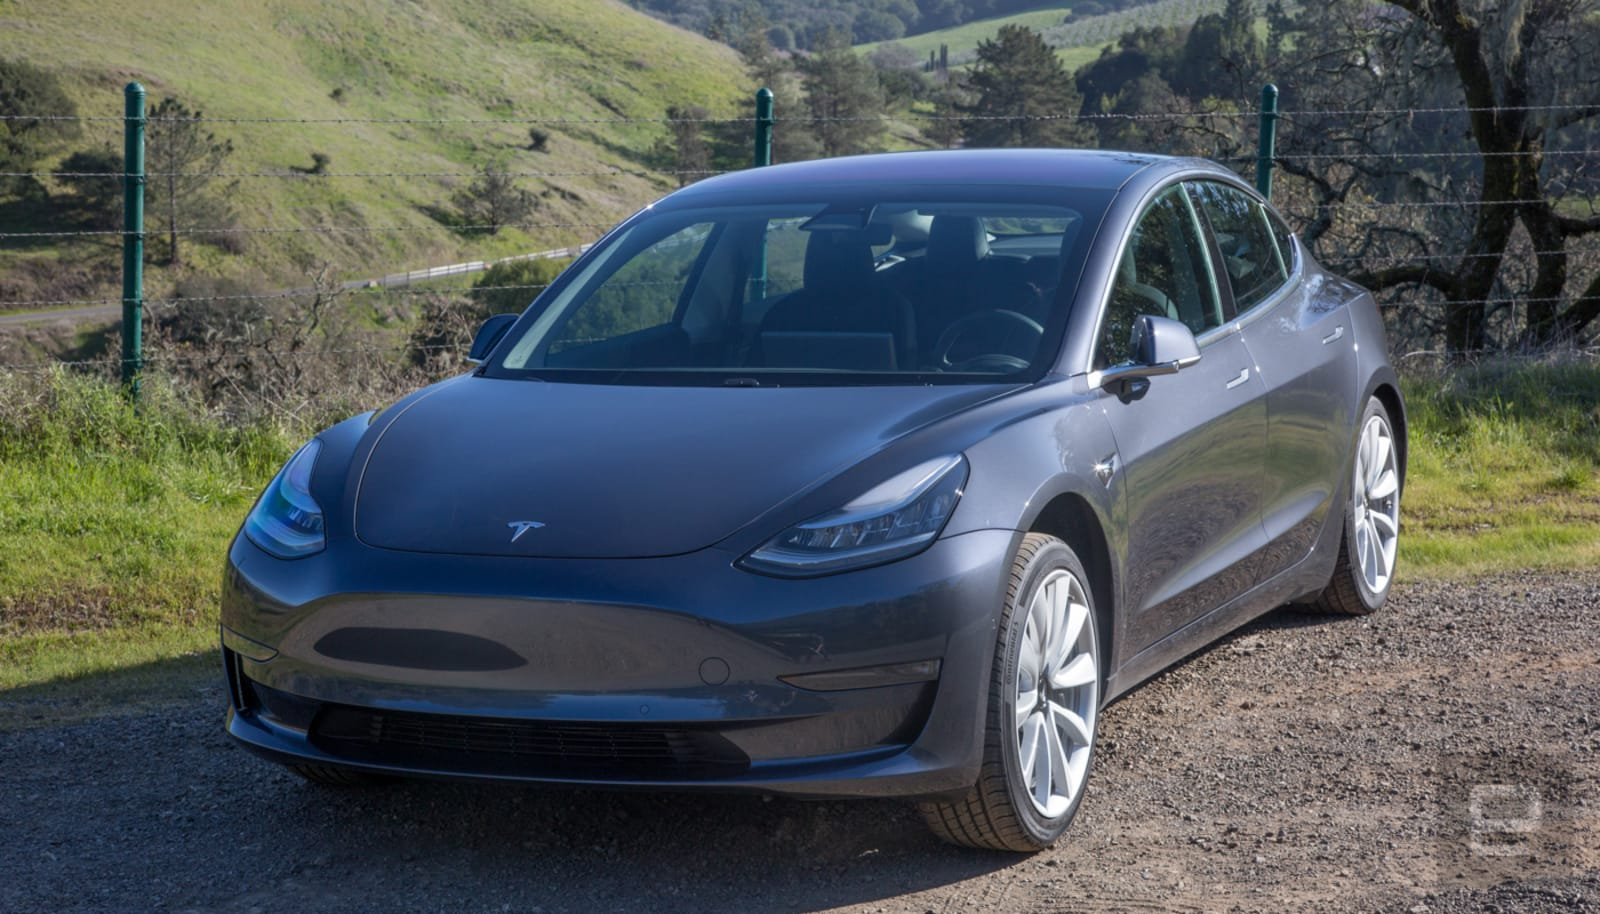 Tesla owners start seeing a data usage counter with a 50GB cap